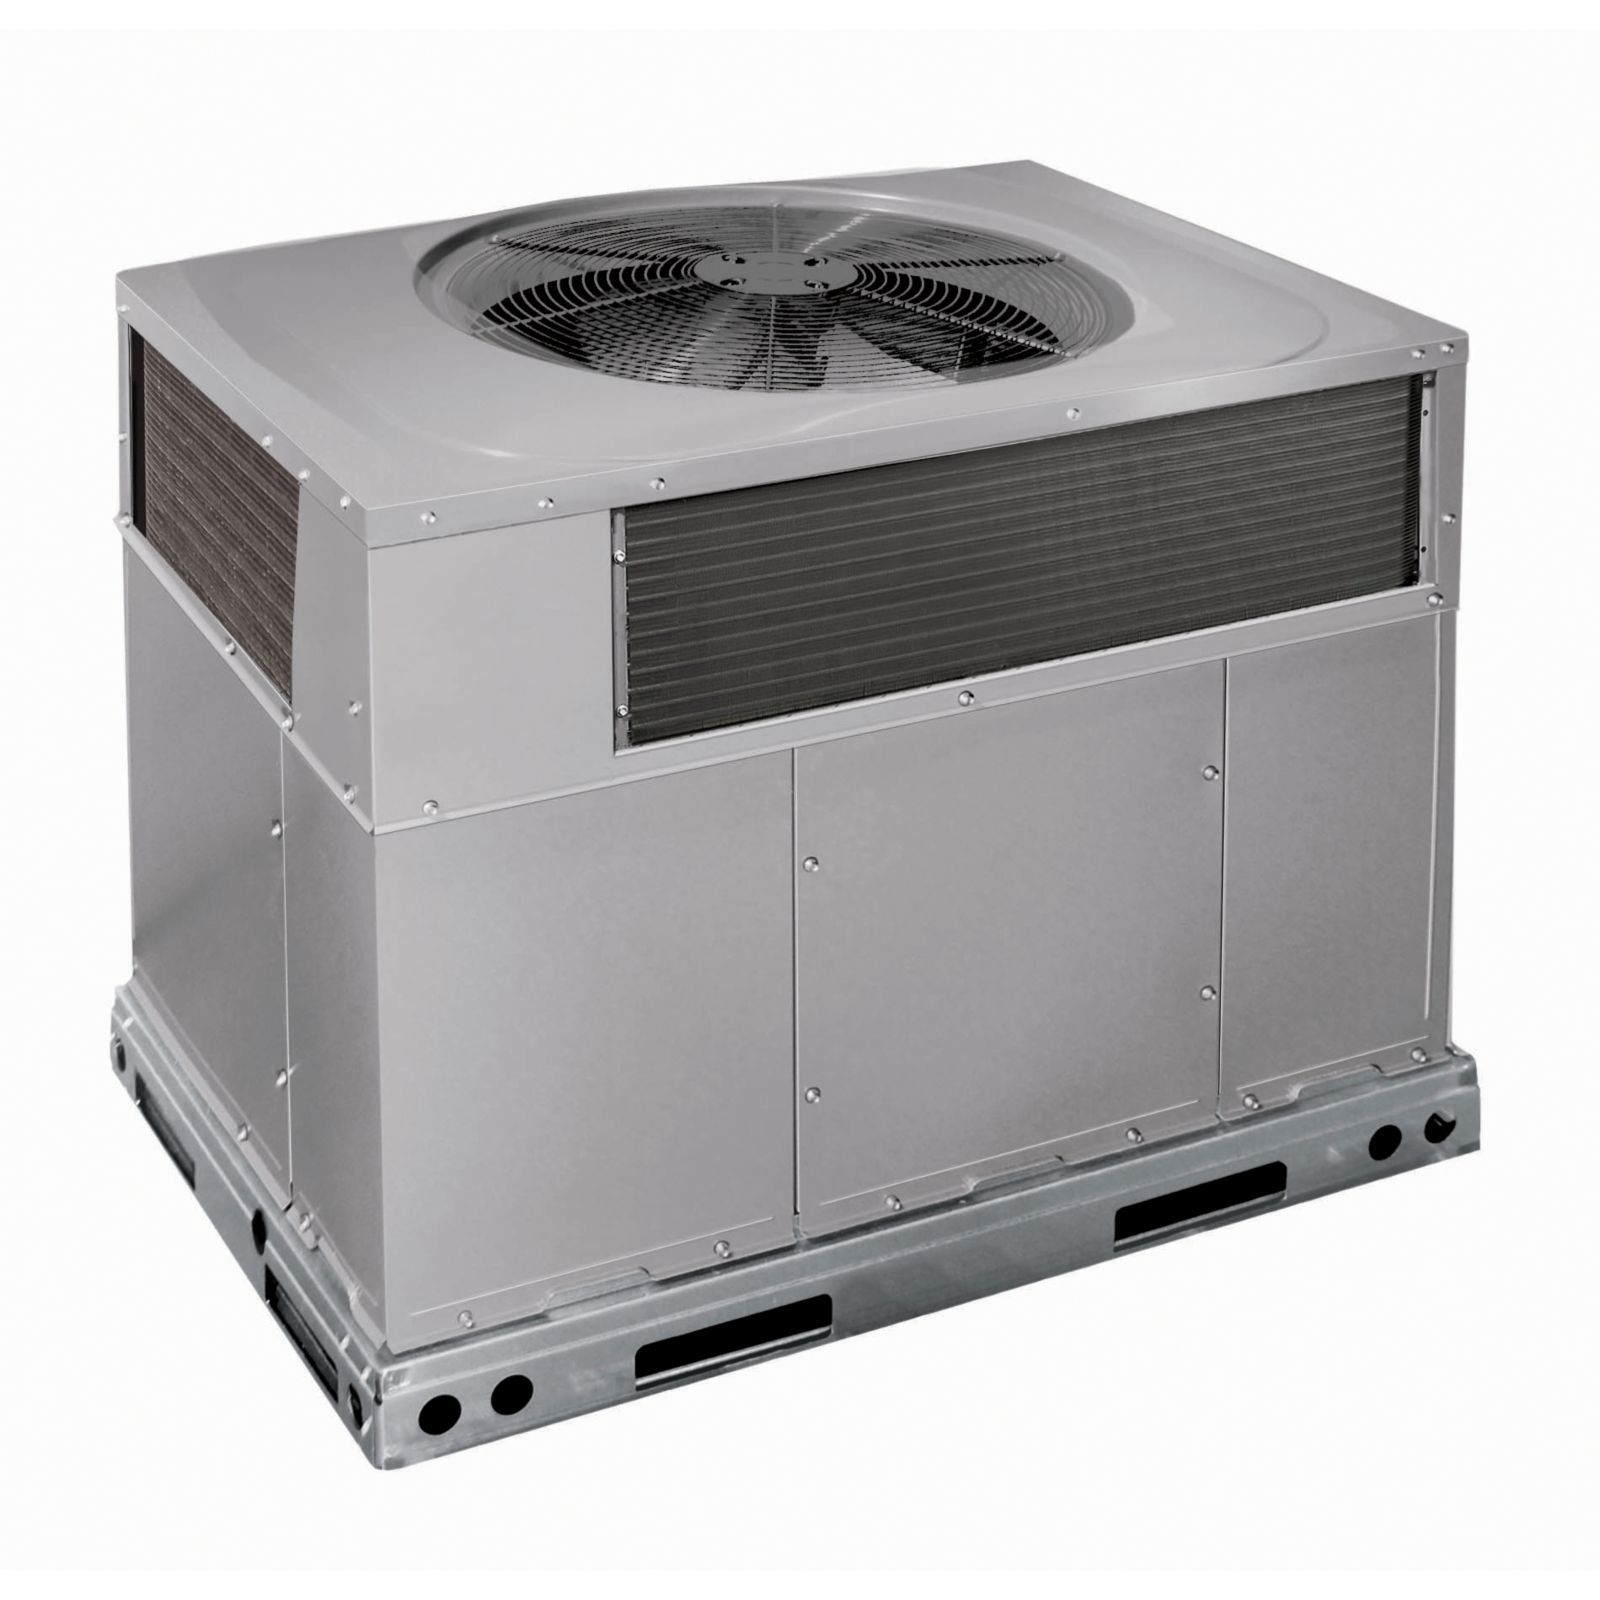 EcoTemp WPA4604000RKA - 5 Ton, 14 SEER, R410A, Packaged Air Conditioner, No Heat, 208/230-1-60